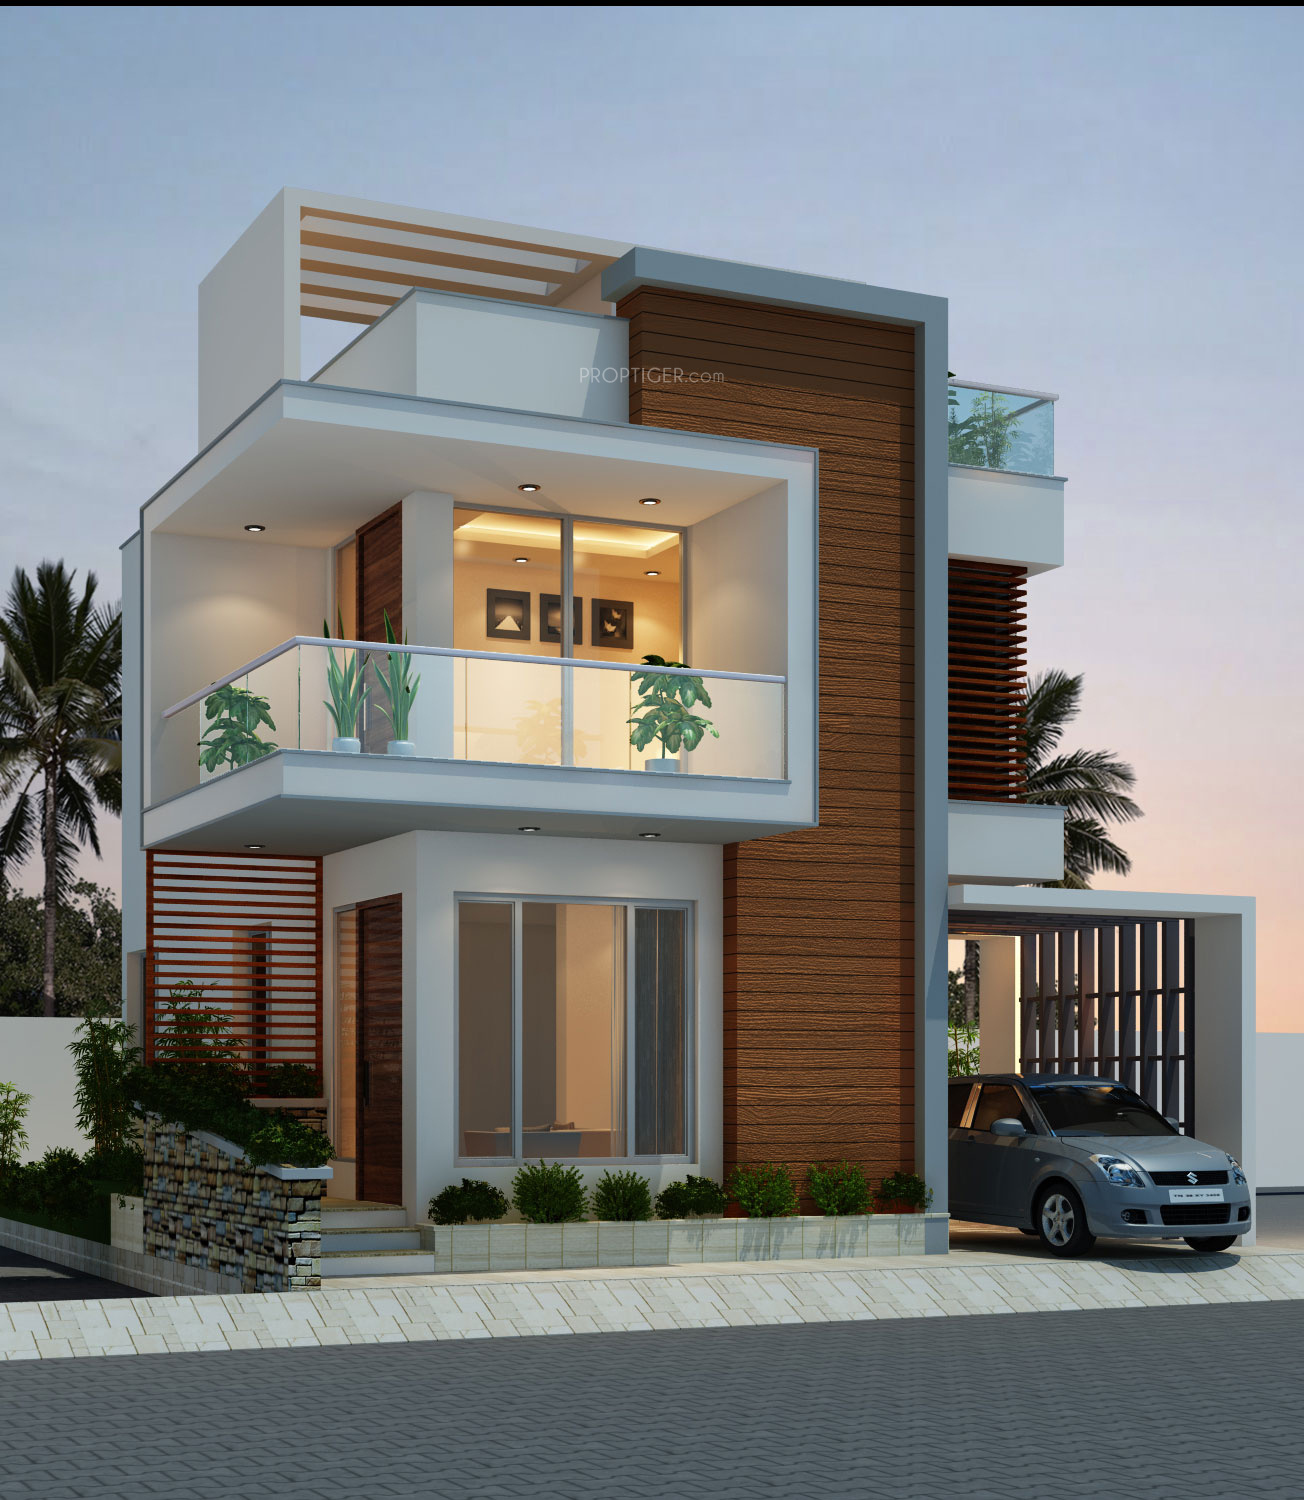 Simple Front Elevation Images : Headway fortune residency villa in perungalathur chennai